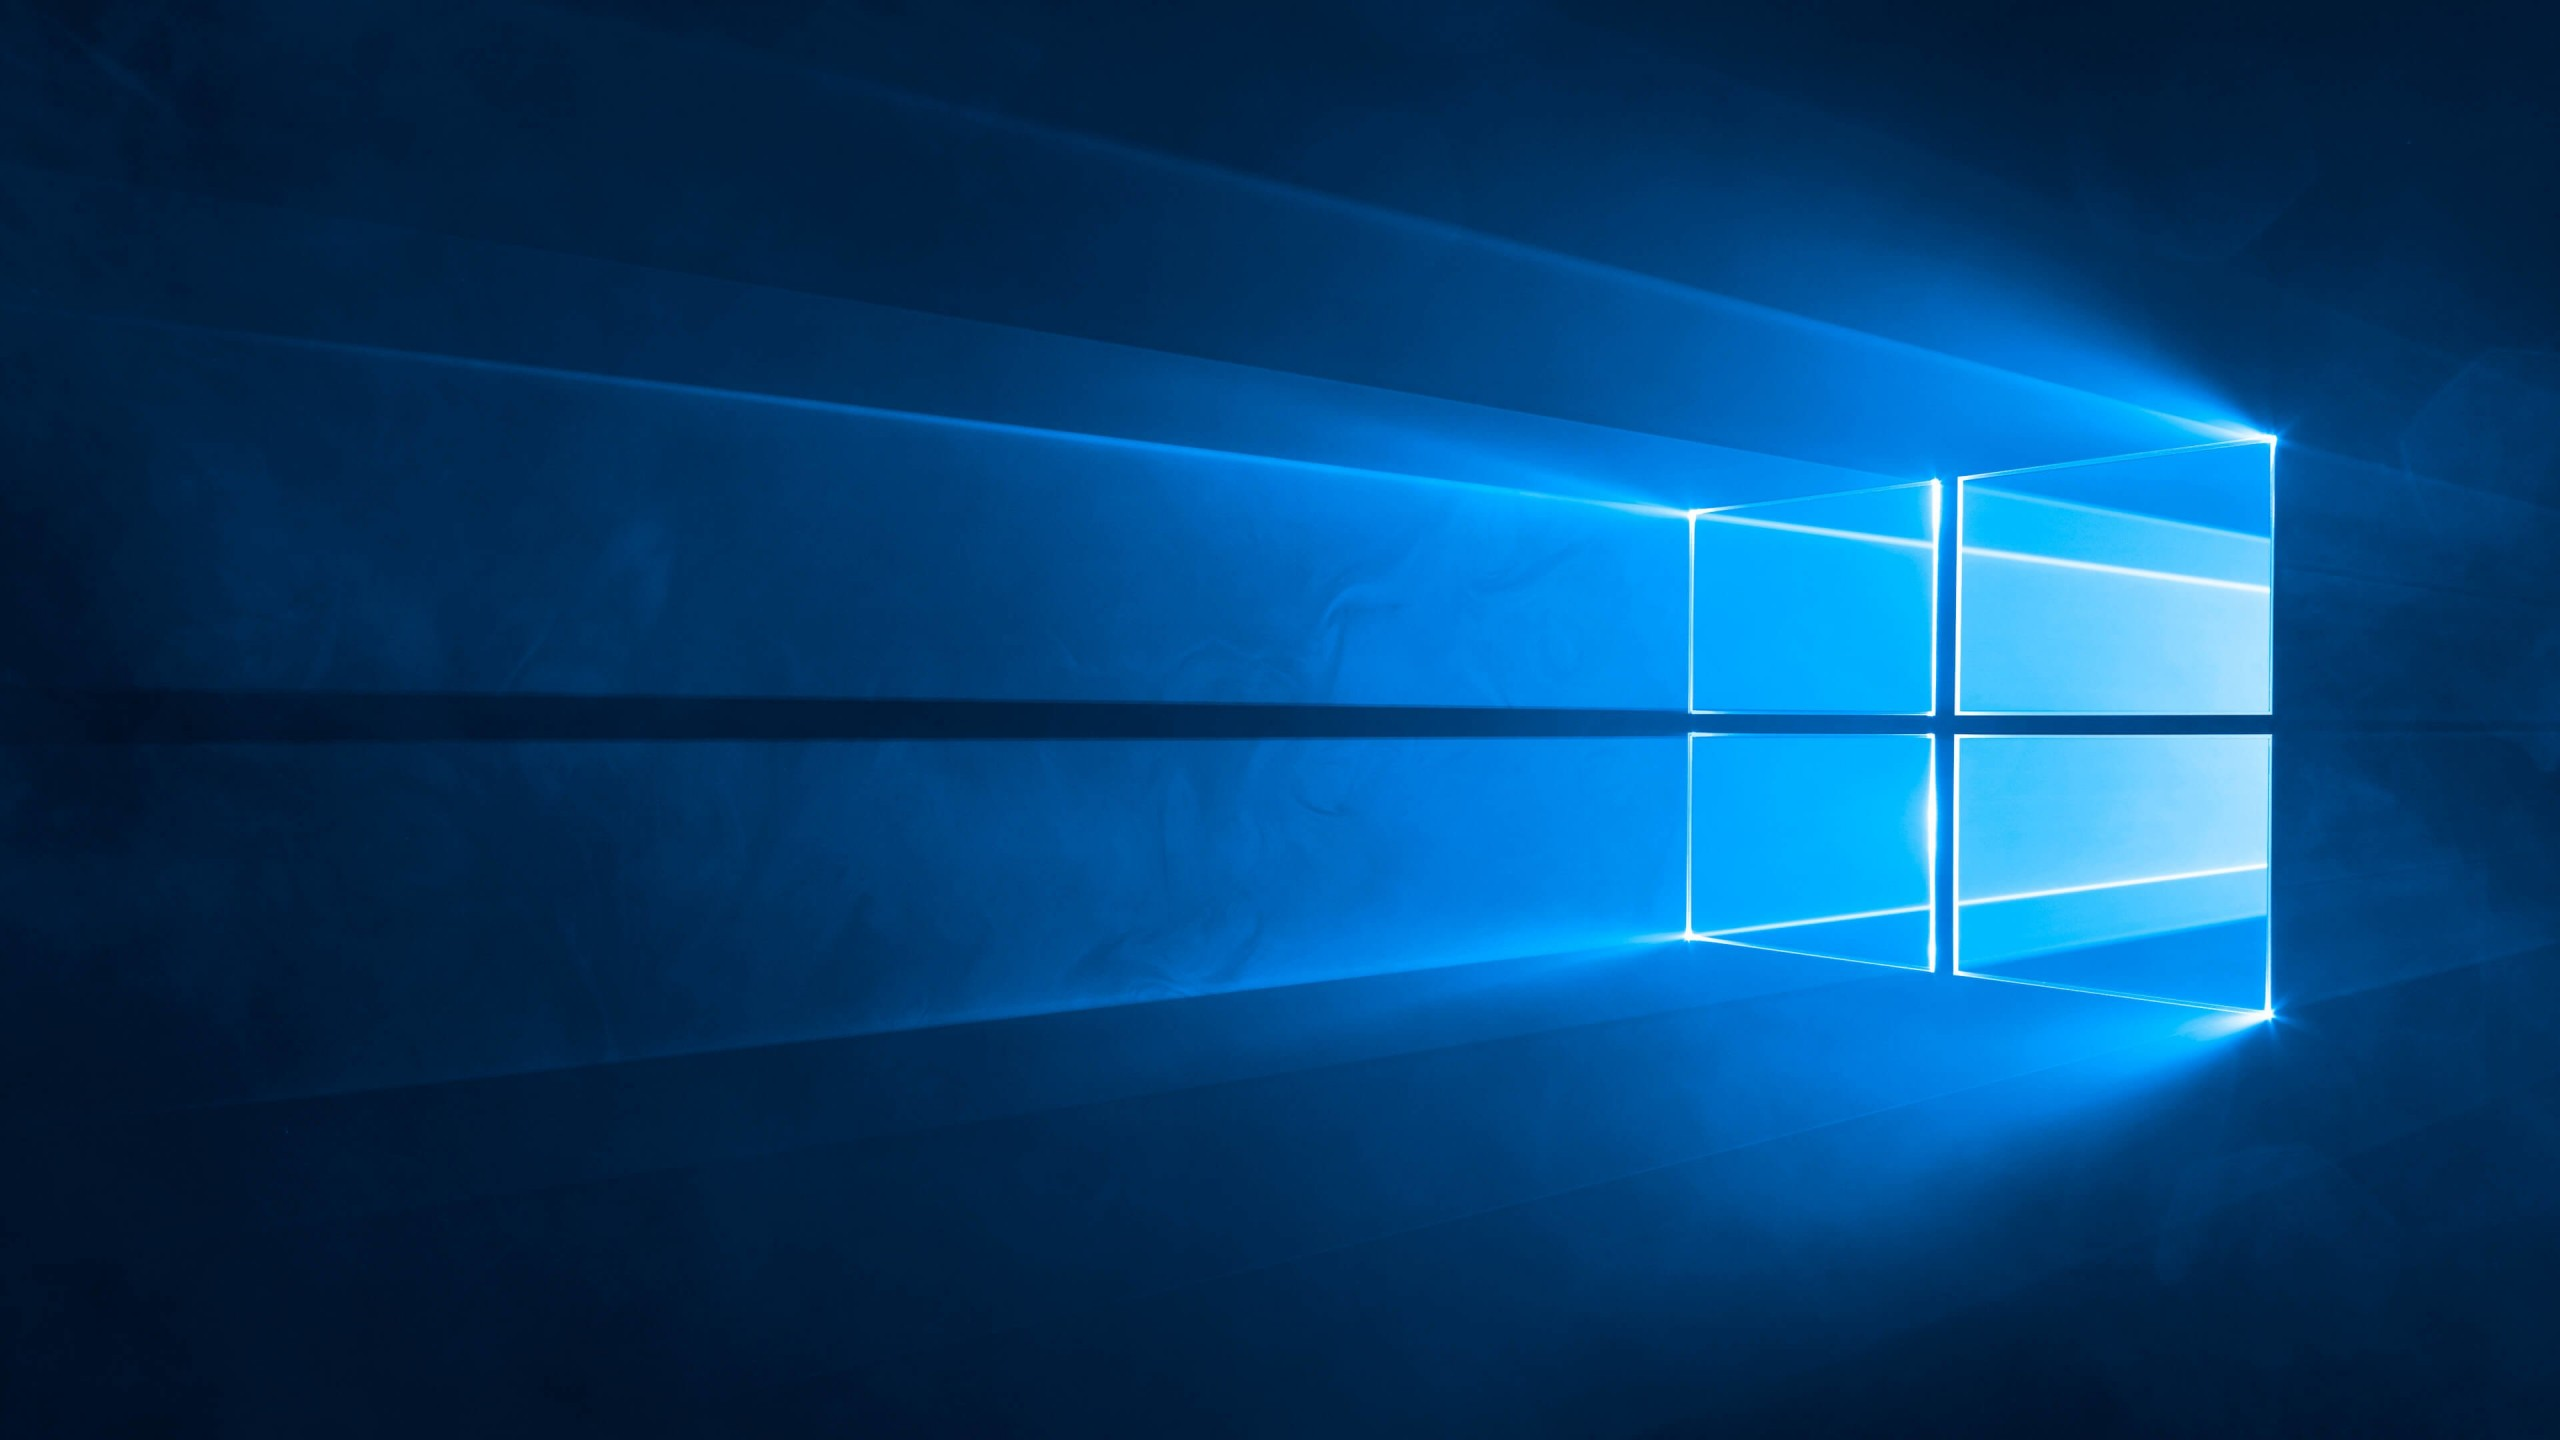 Windows 10 Official Wallpaper for Desktop 2560x1440